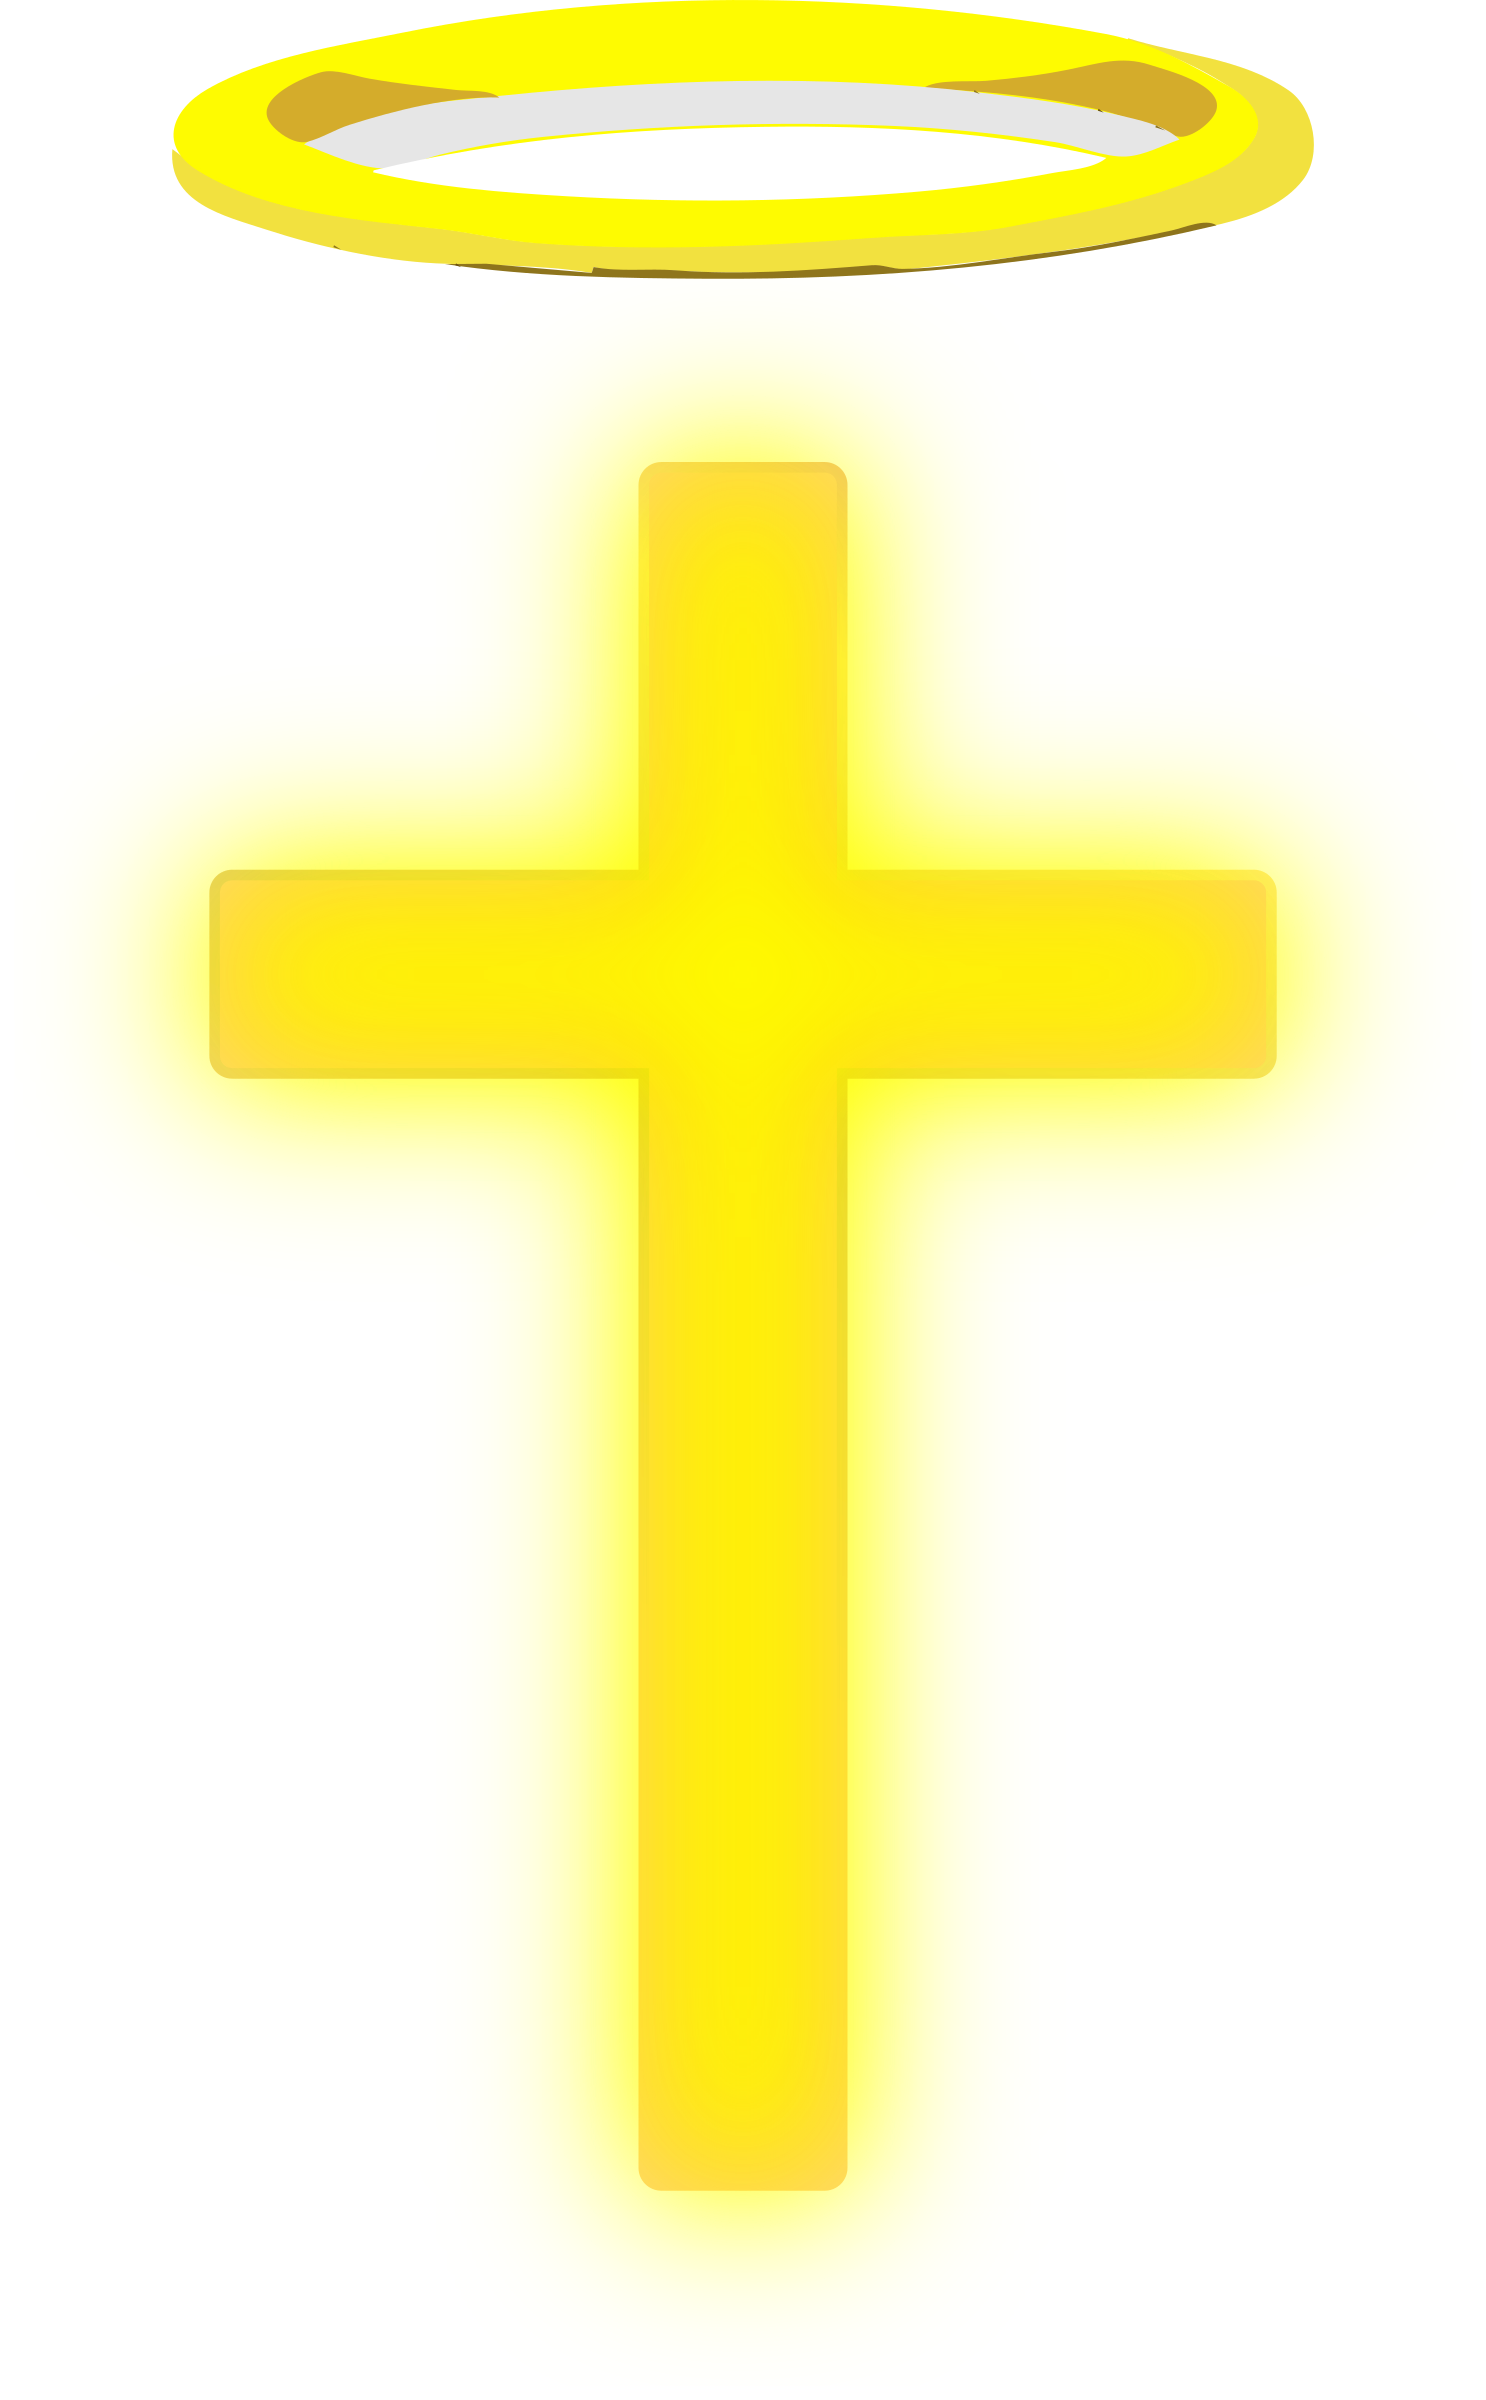 Halo clipart religion. Cross with